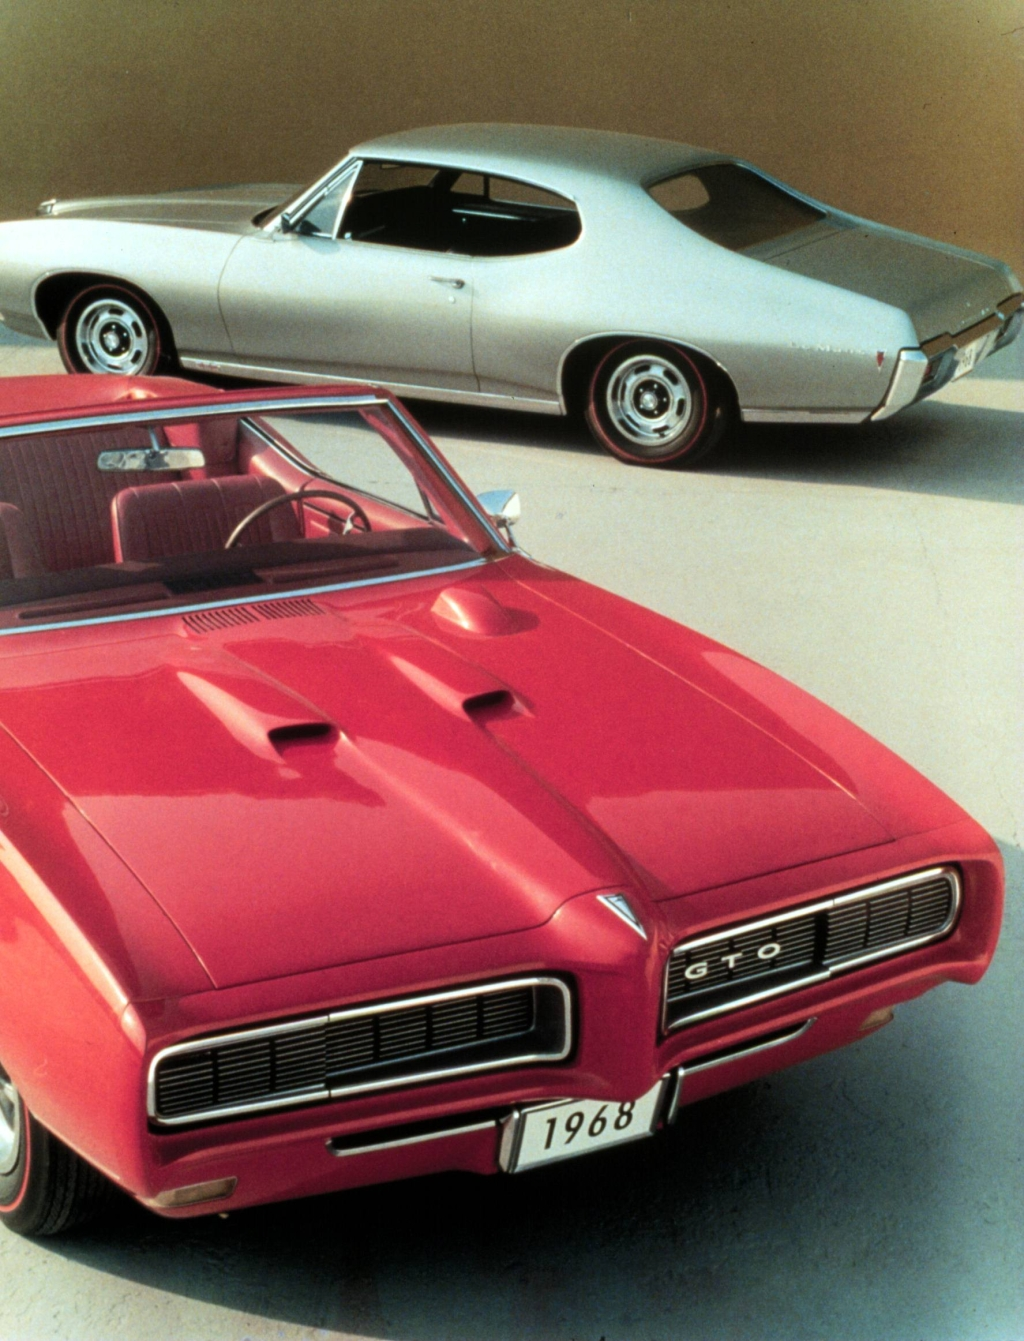 muscle cars history the Pontiac GTO